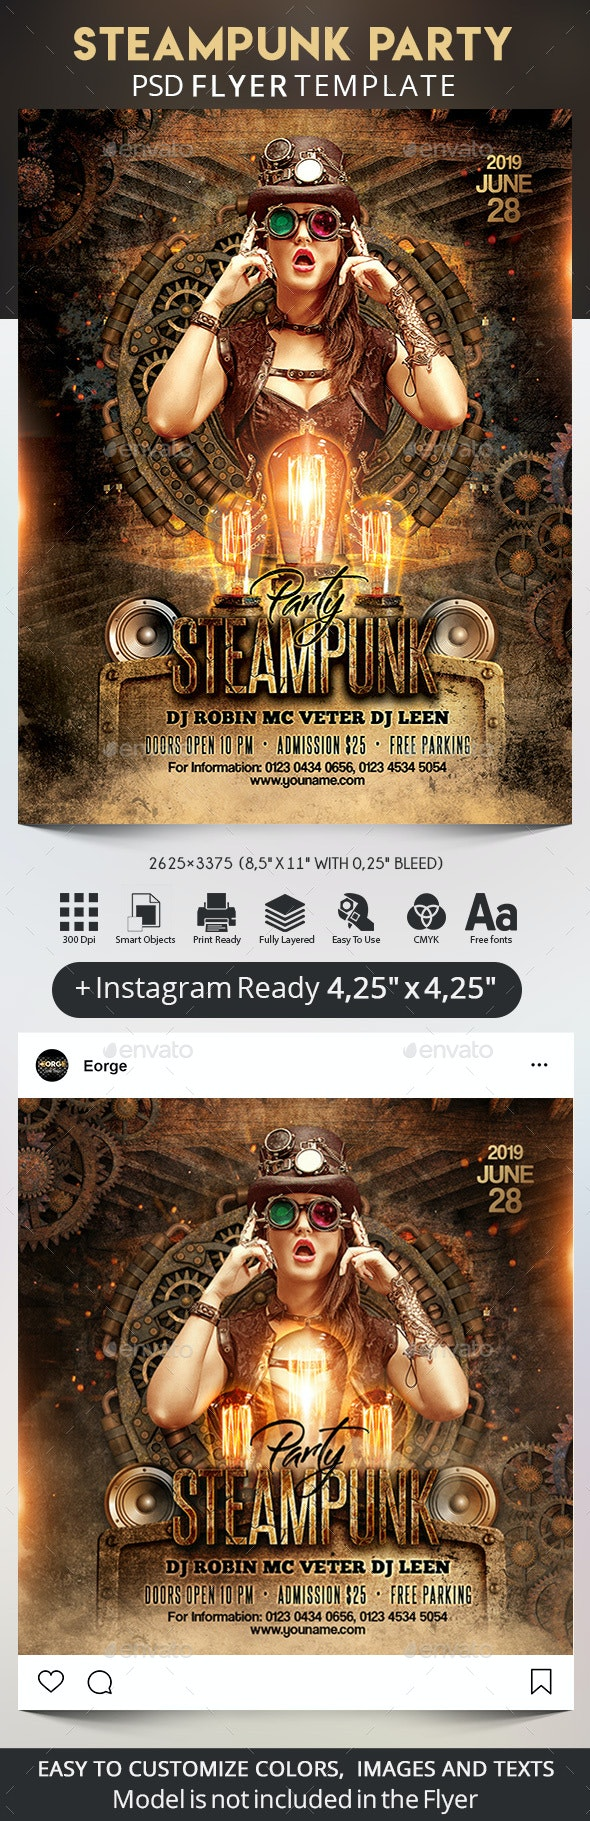 Steampunk Party Flyer + Instagram Post - Clubs & Parties Events